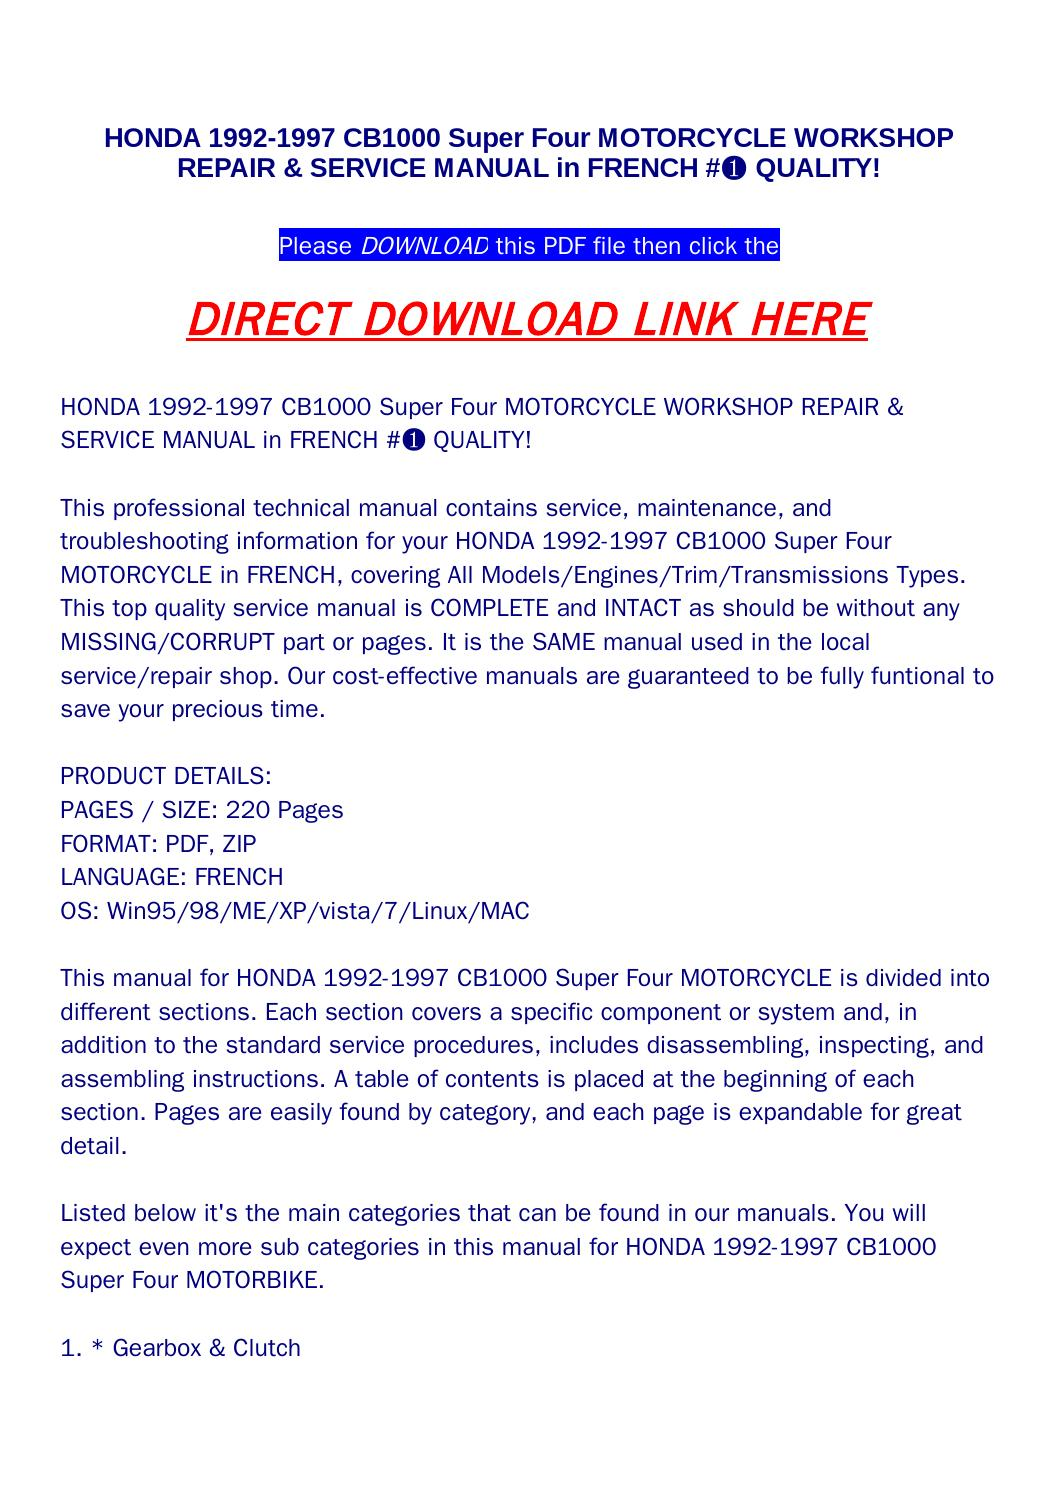 Honda 1992 1997 cb1000 super four motorcycle workshop repair & service  manual in french #➀ quality! by Newton Below - issuu